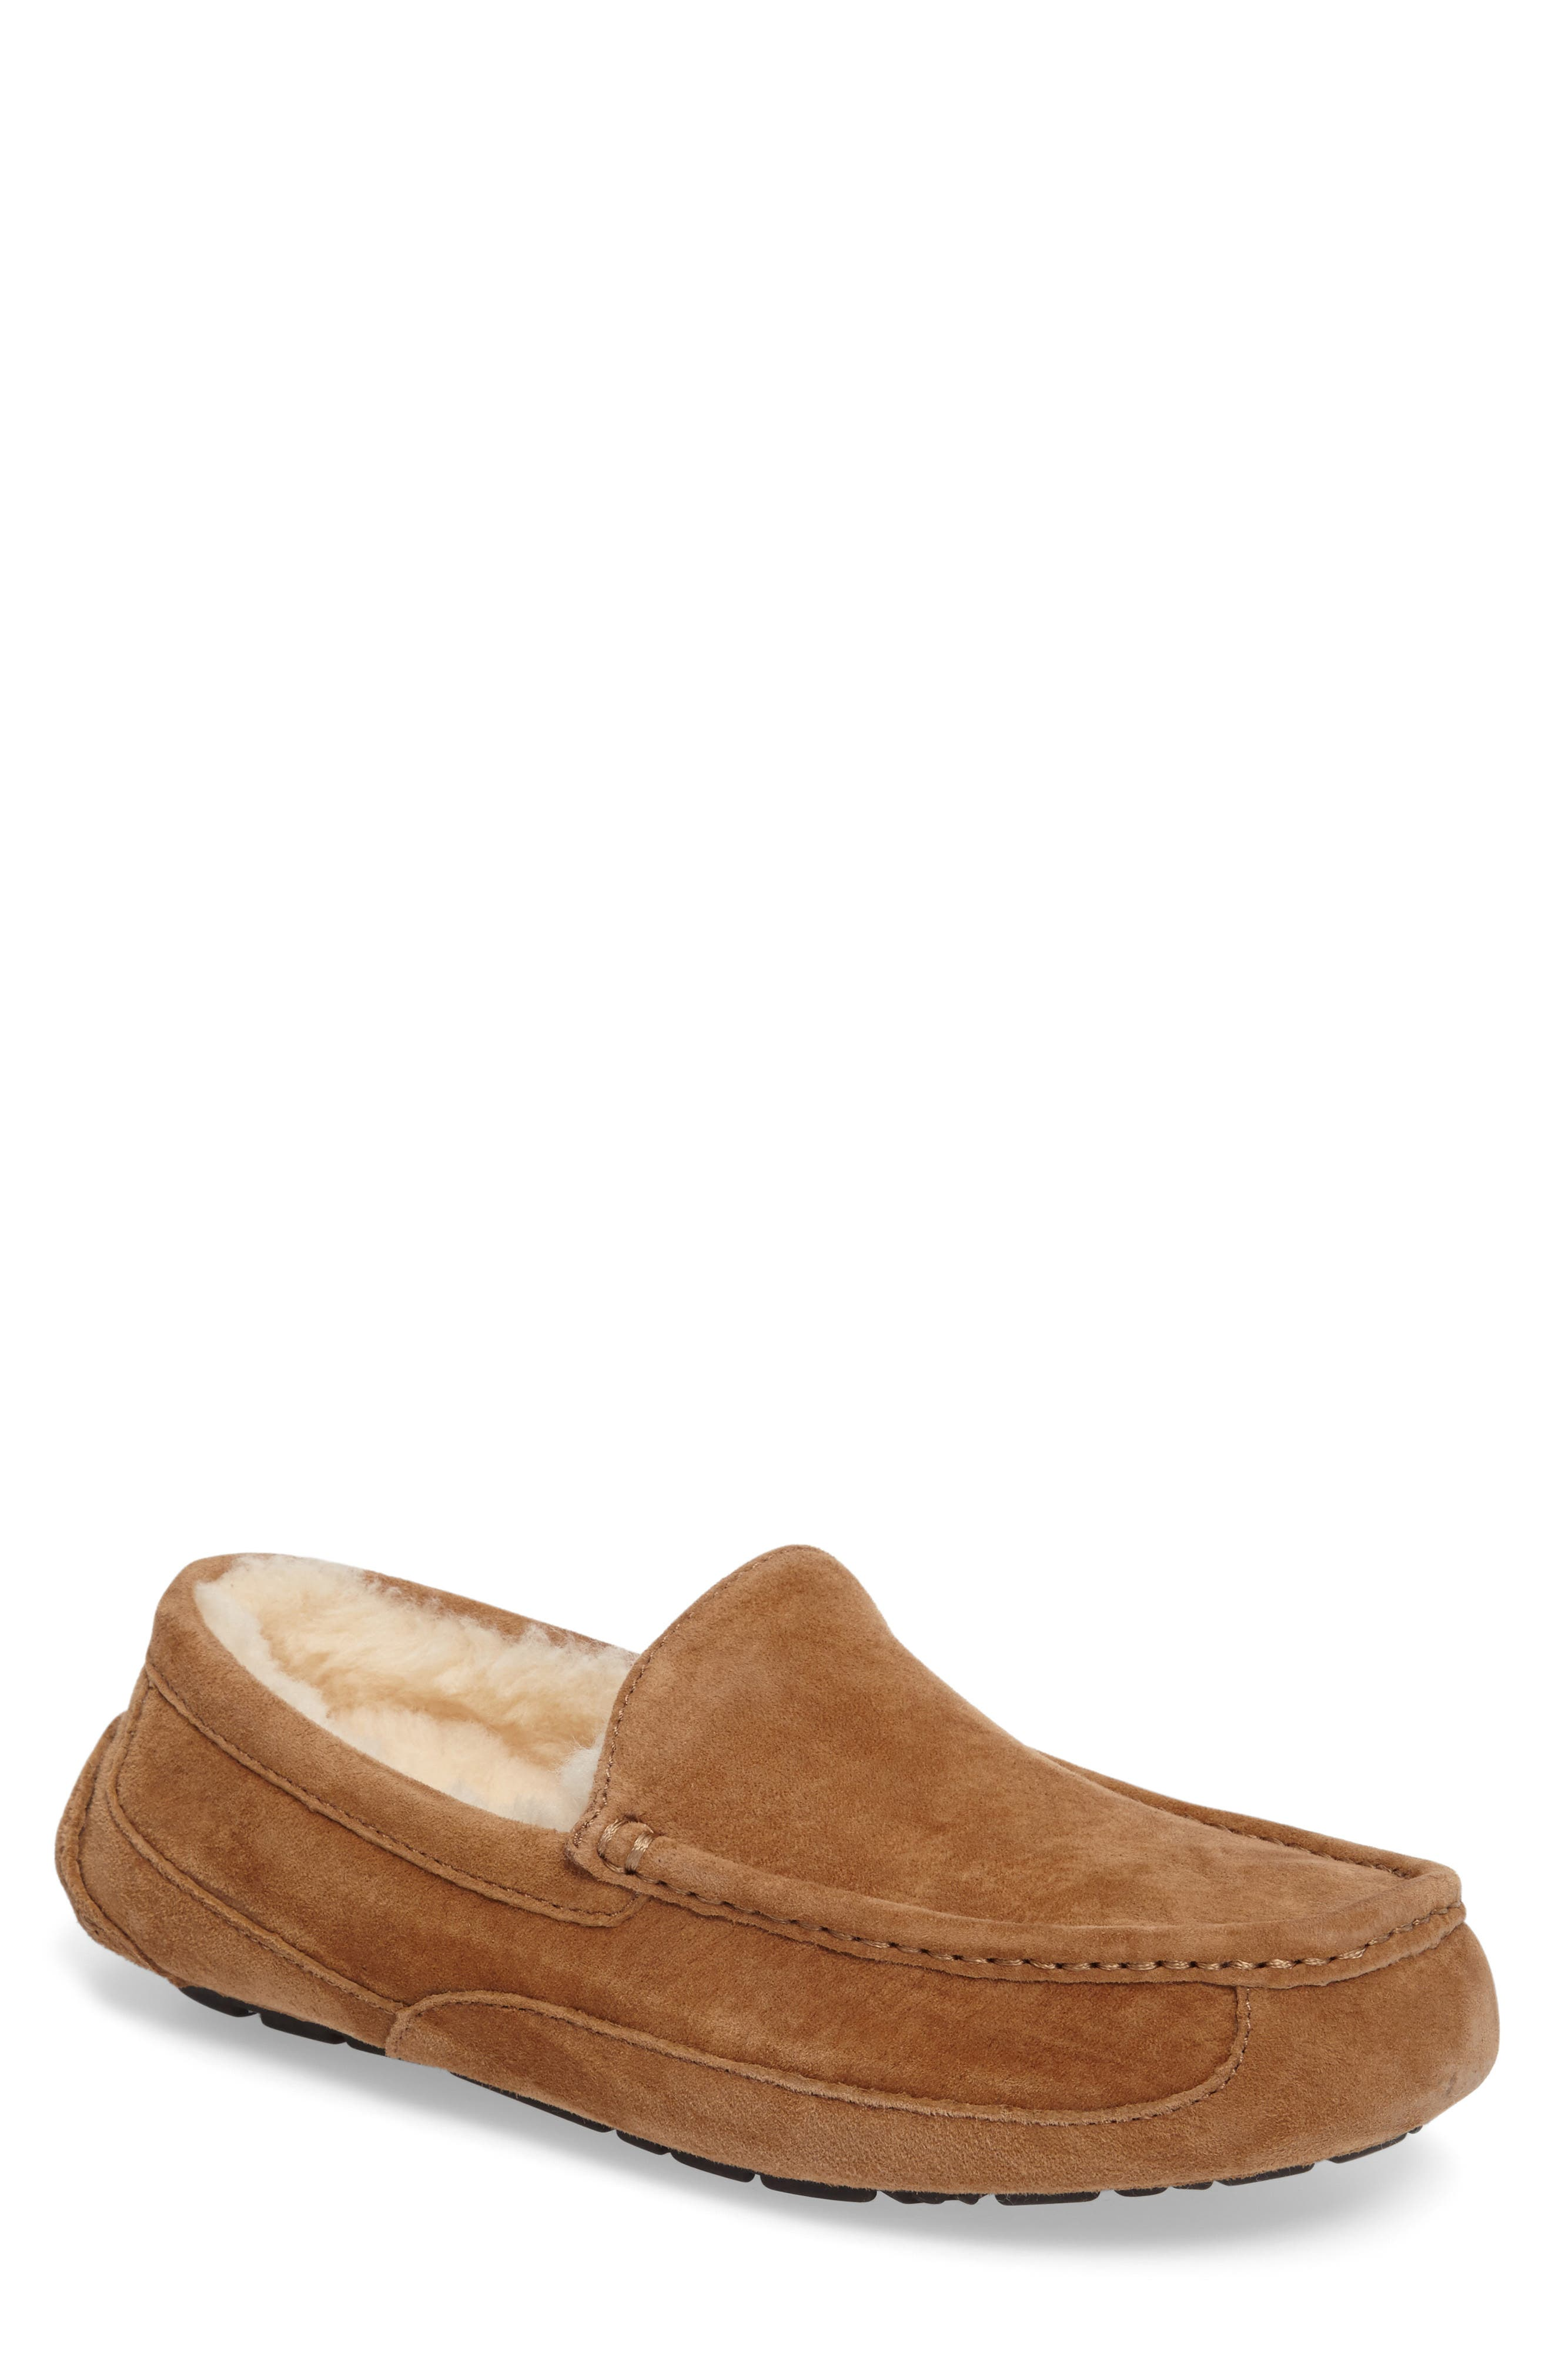 Ugg Ascot Suede Slipper, 8- Brown